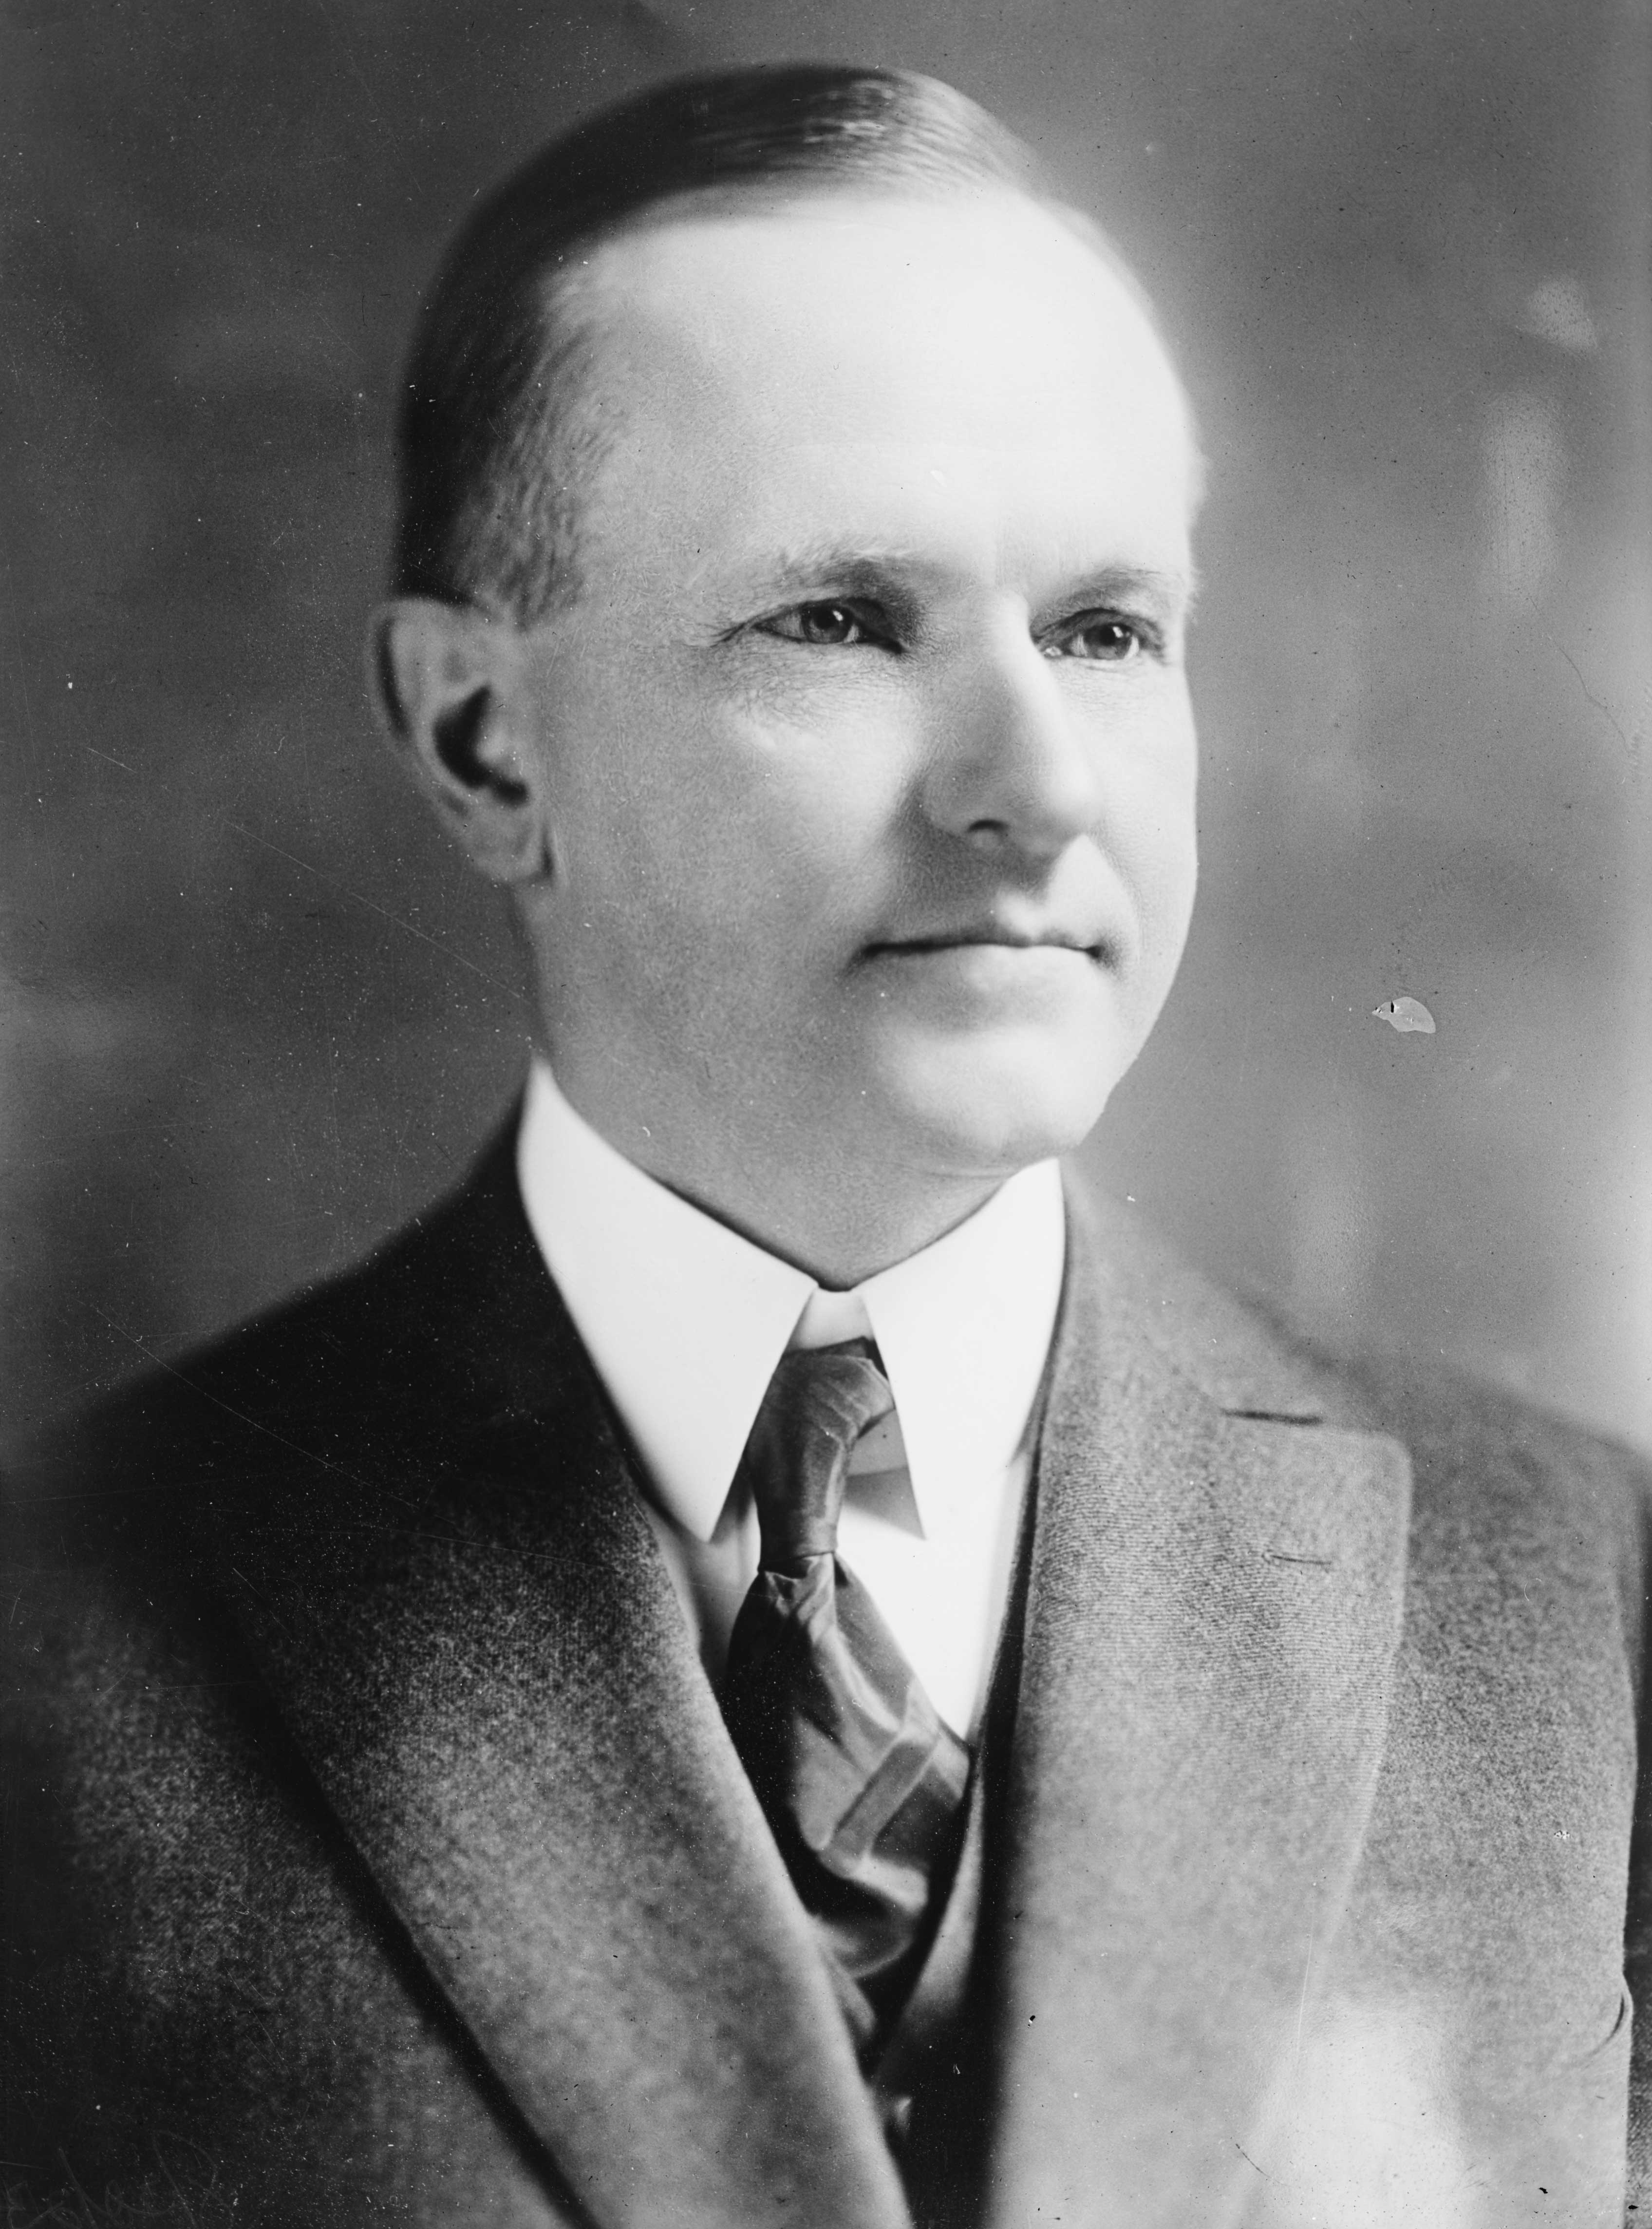 a biography of calvin coolidge the 30th president of the united states